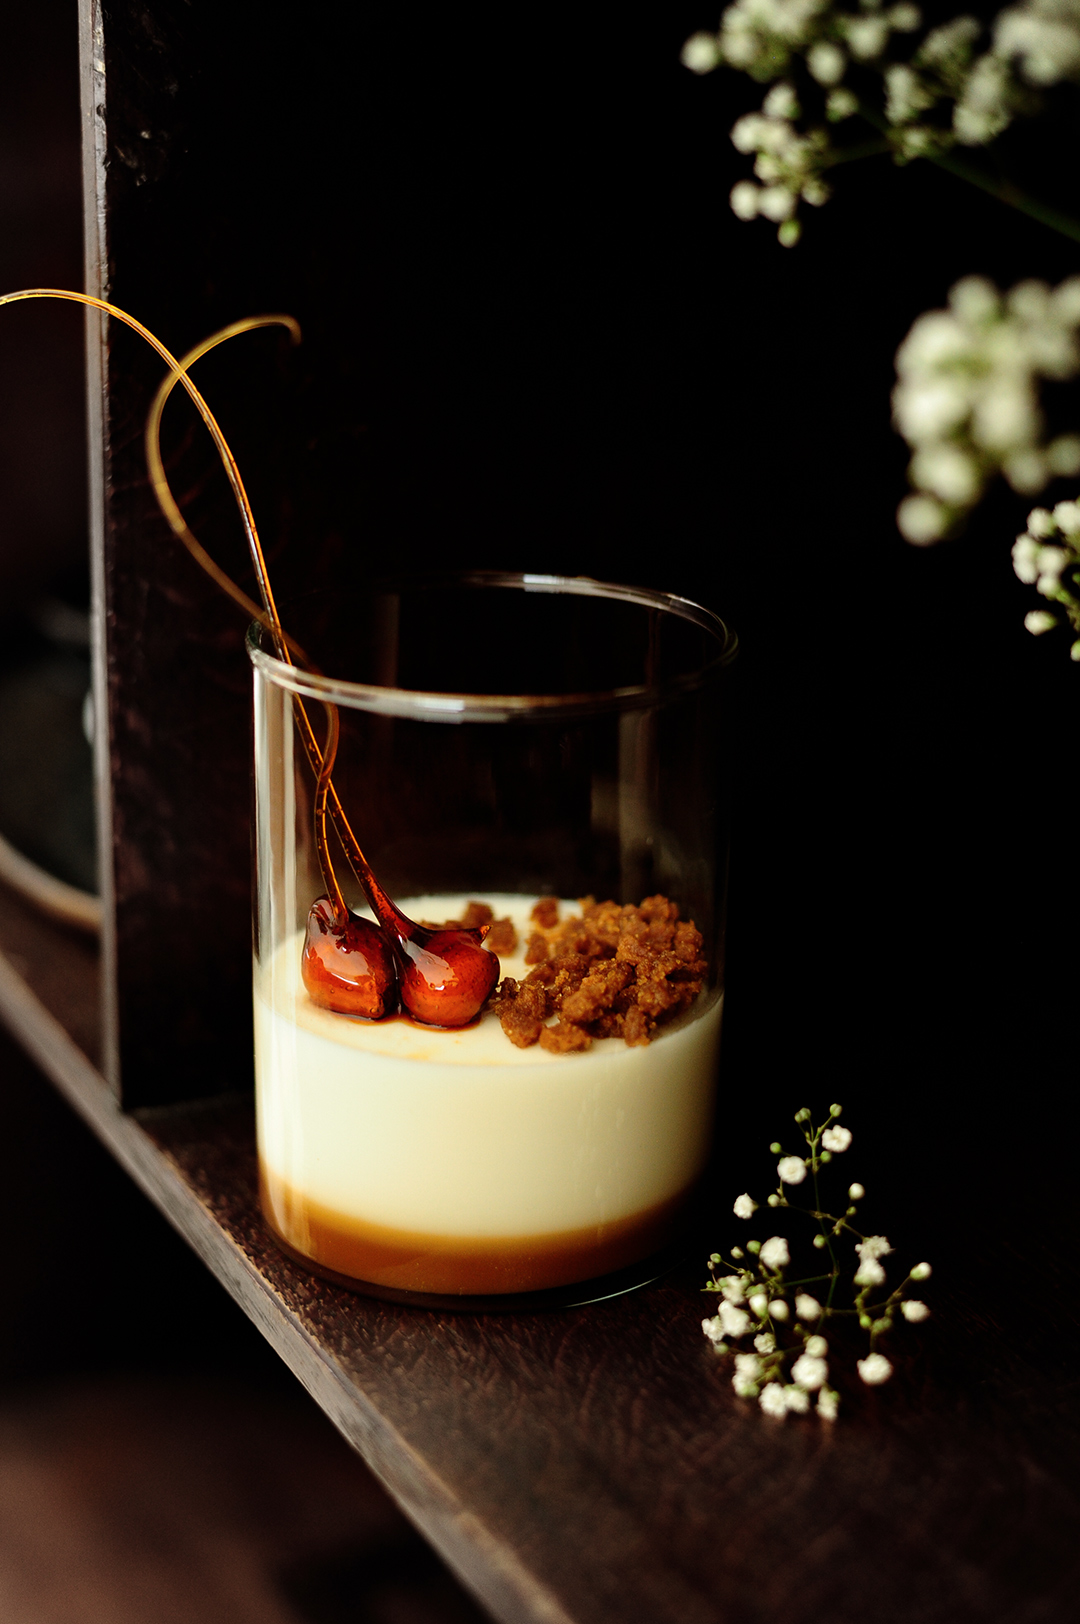 serving dumplings | Panna cotta with cookie milk and salted caramel